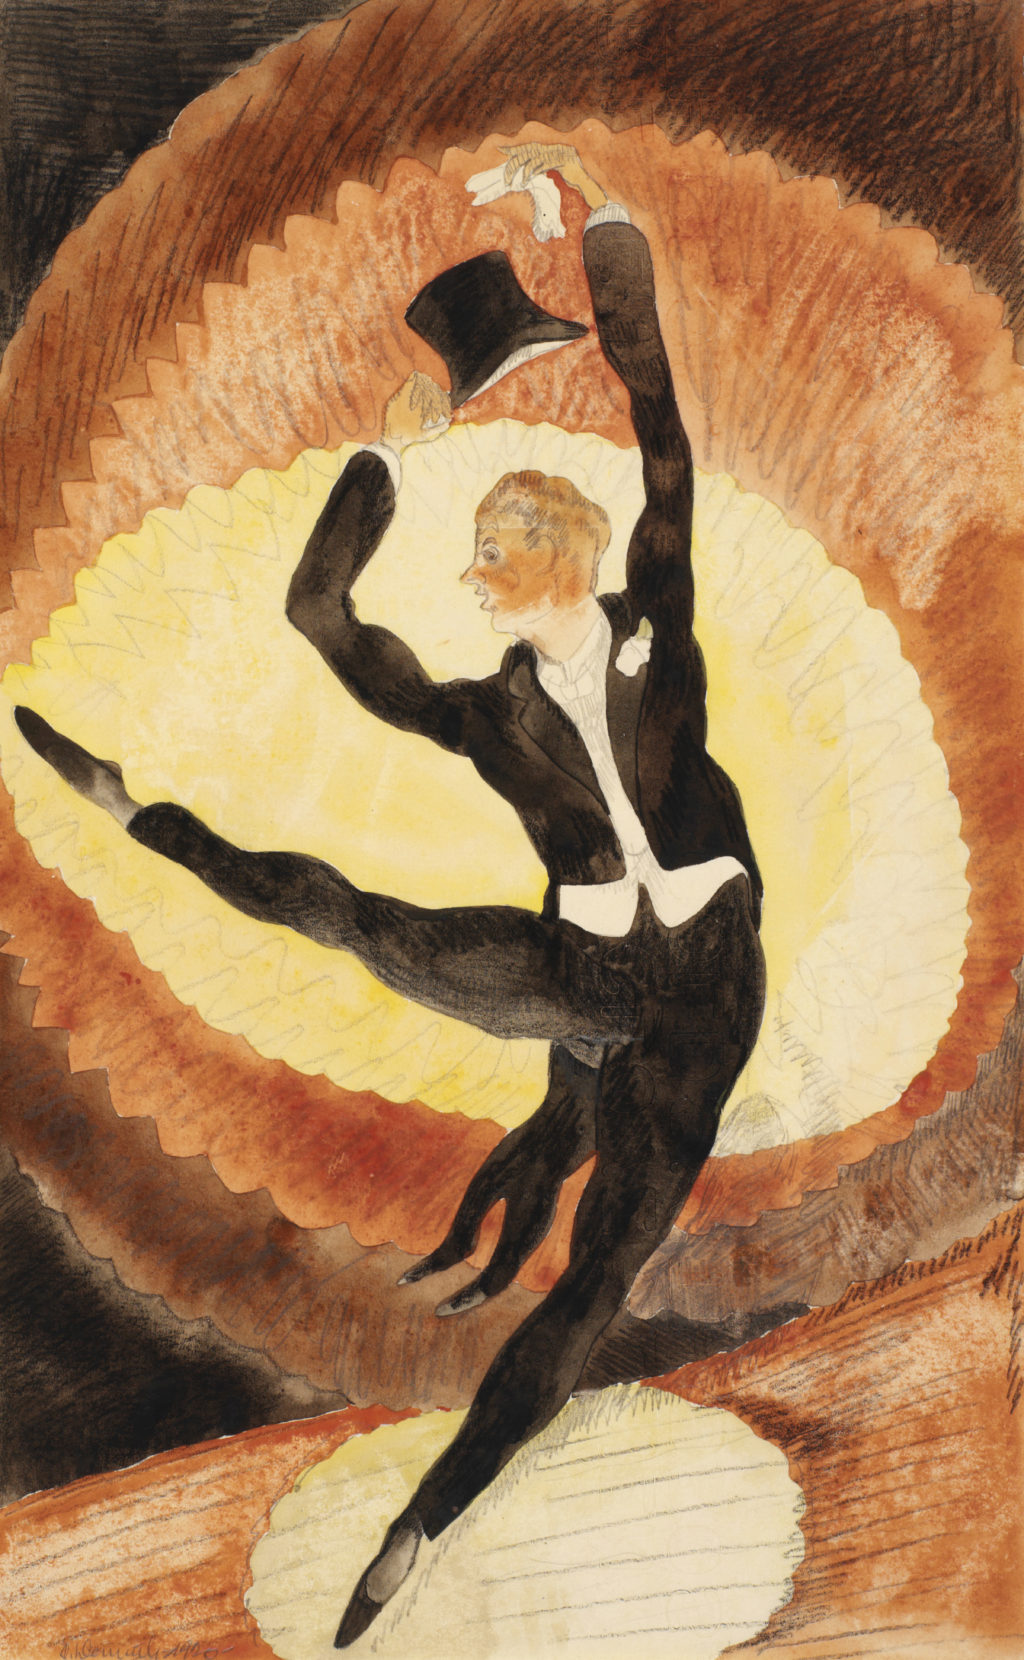 In Vaudeville: Acrobatic Male Dancer with Top Hat